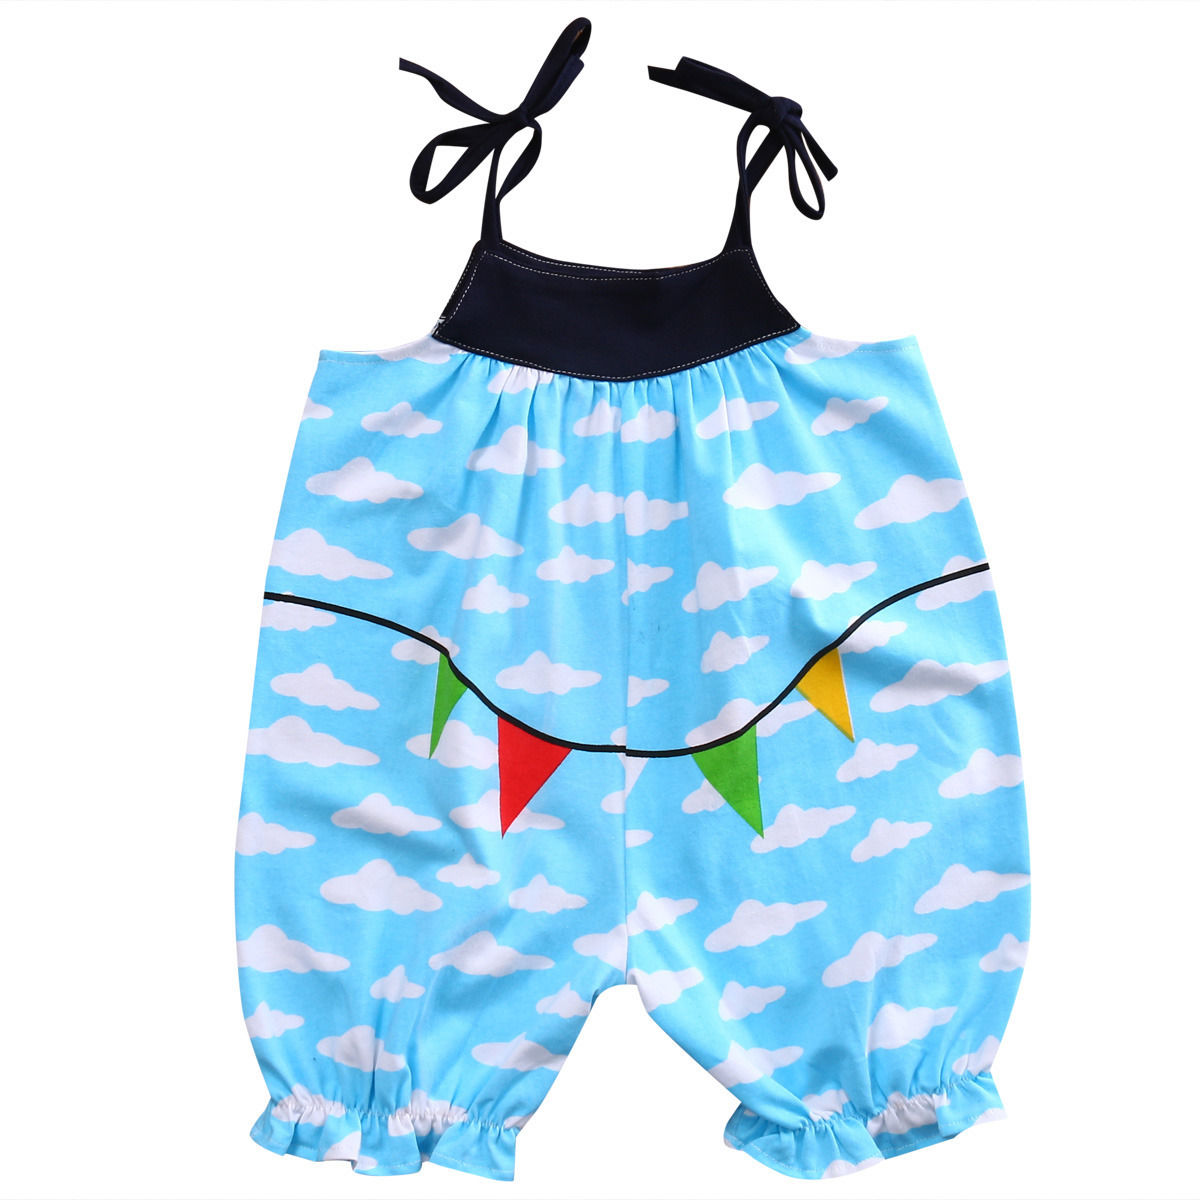 Toddler Kids Baby Girls Jumpsuit Summer Floral Romper Sunsuit OnePieces Outfits